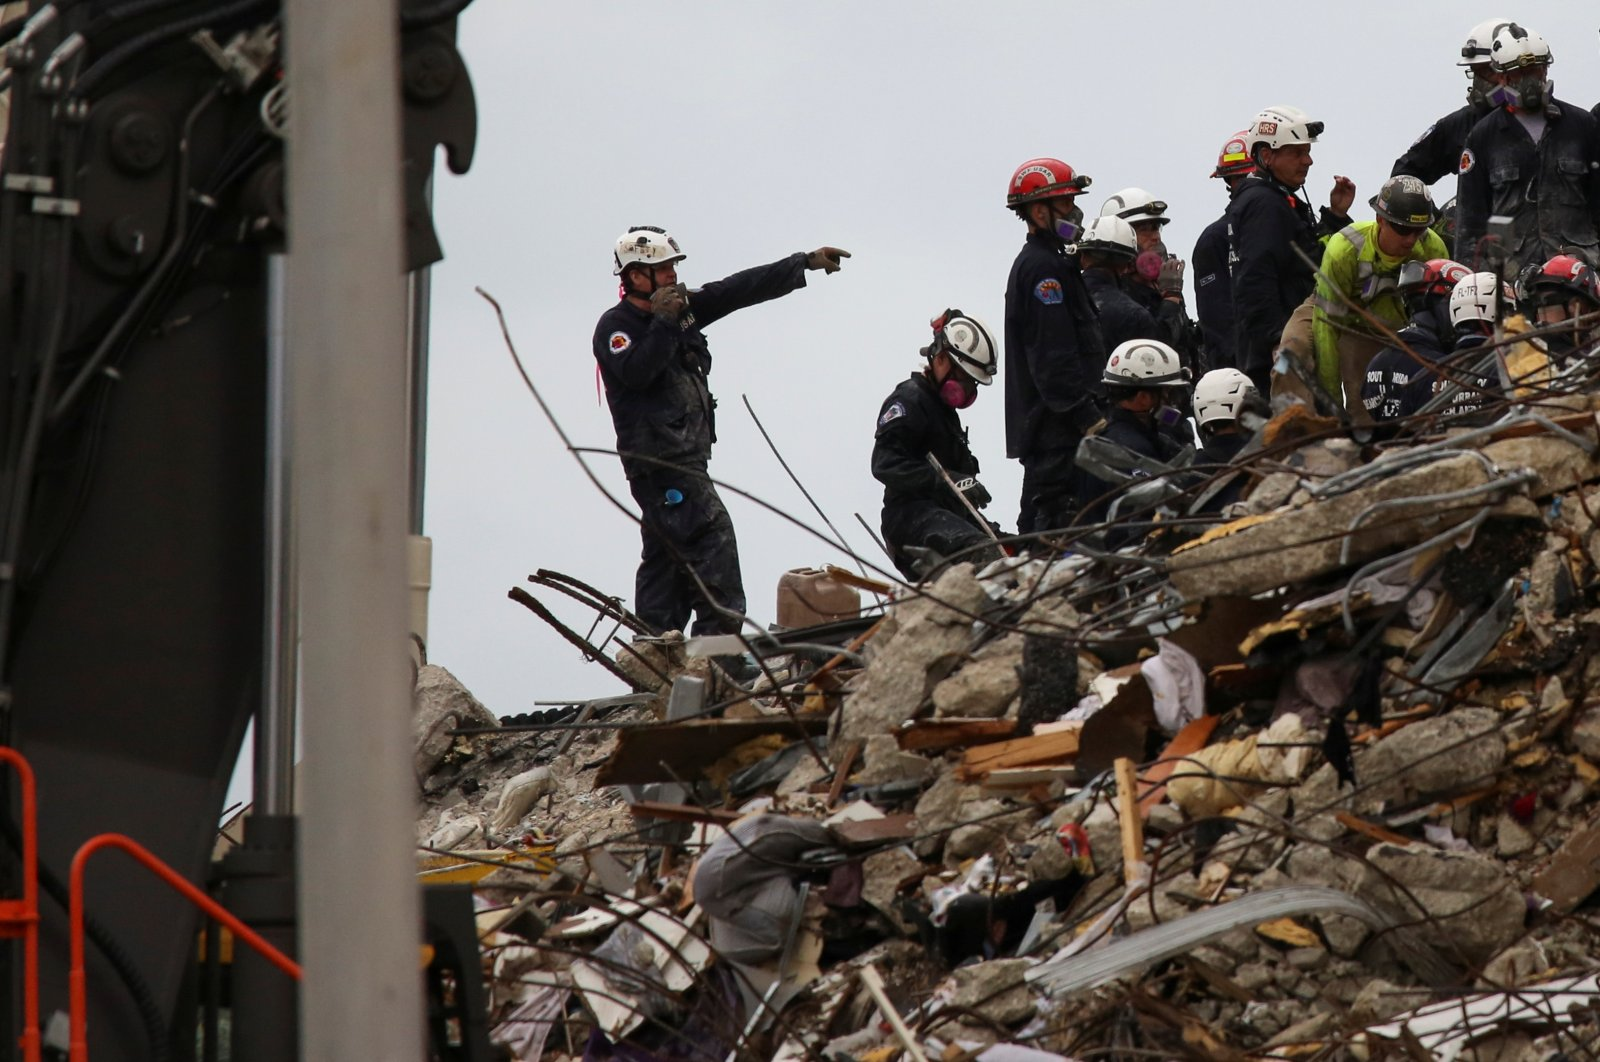 Rescue personnel continue the search and rescue operation for survivors at the site of a partially collapsed residential building in Surfside, near Miami Beach, Florida, U.S. June 30, 2021. (Reuters Photo)